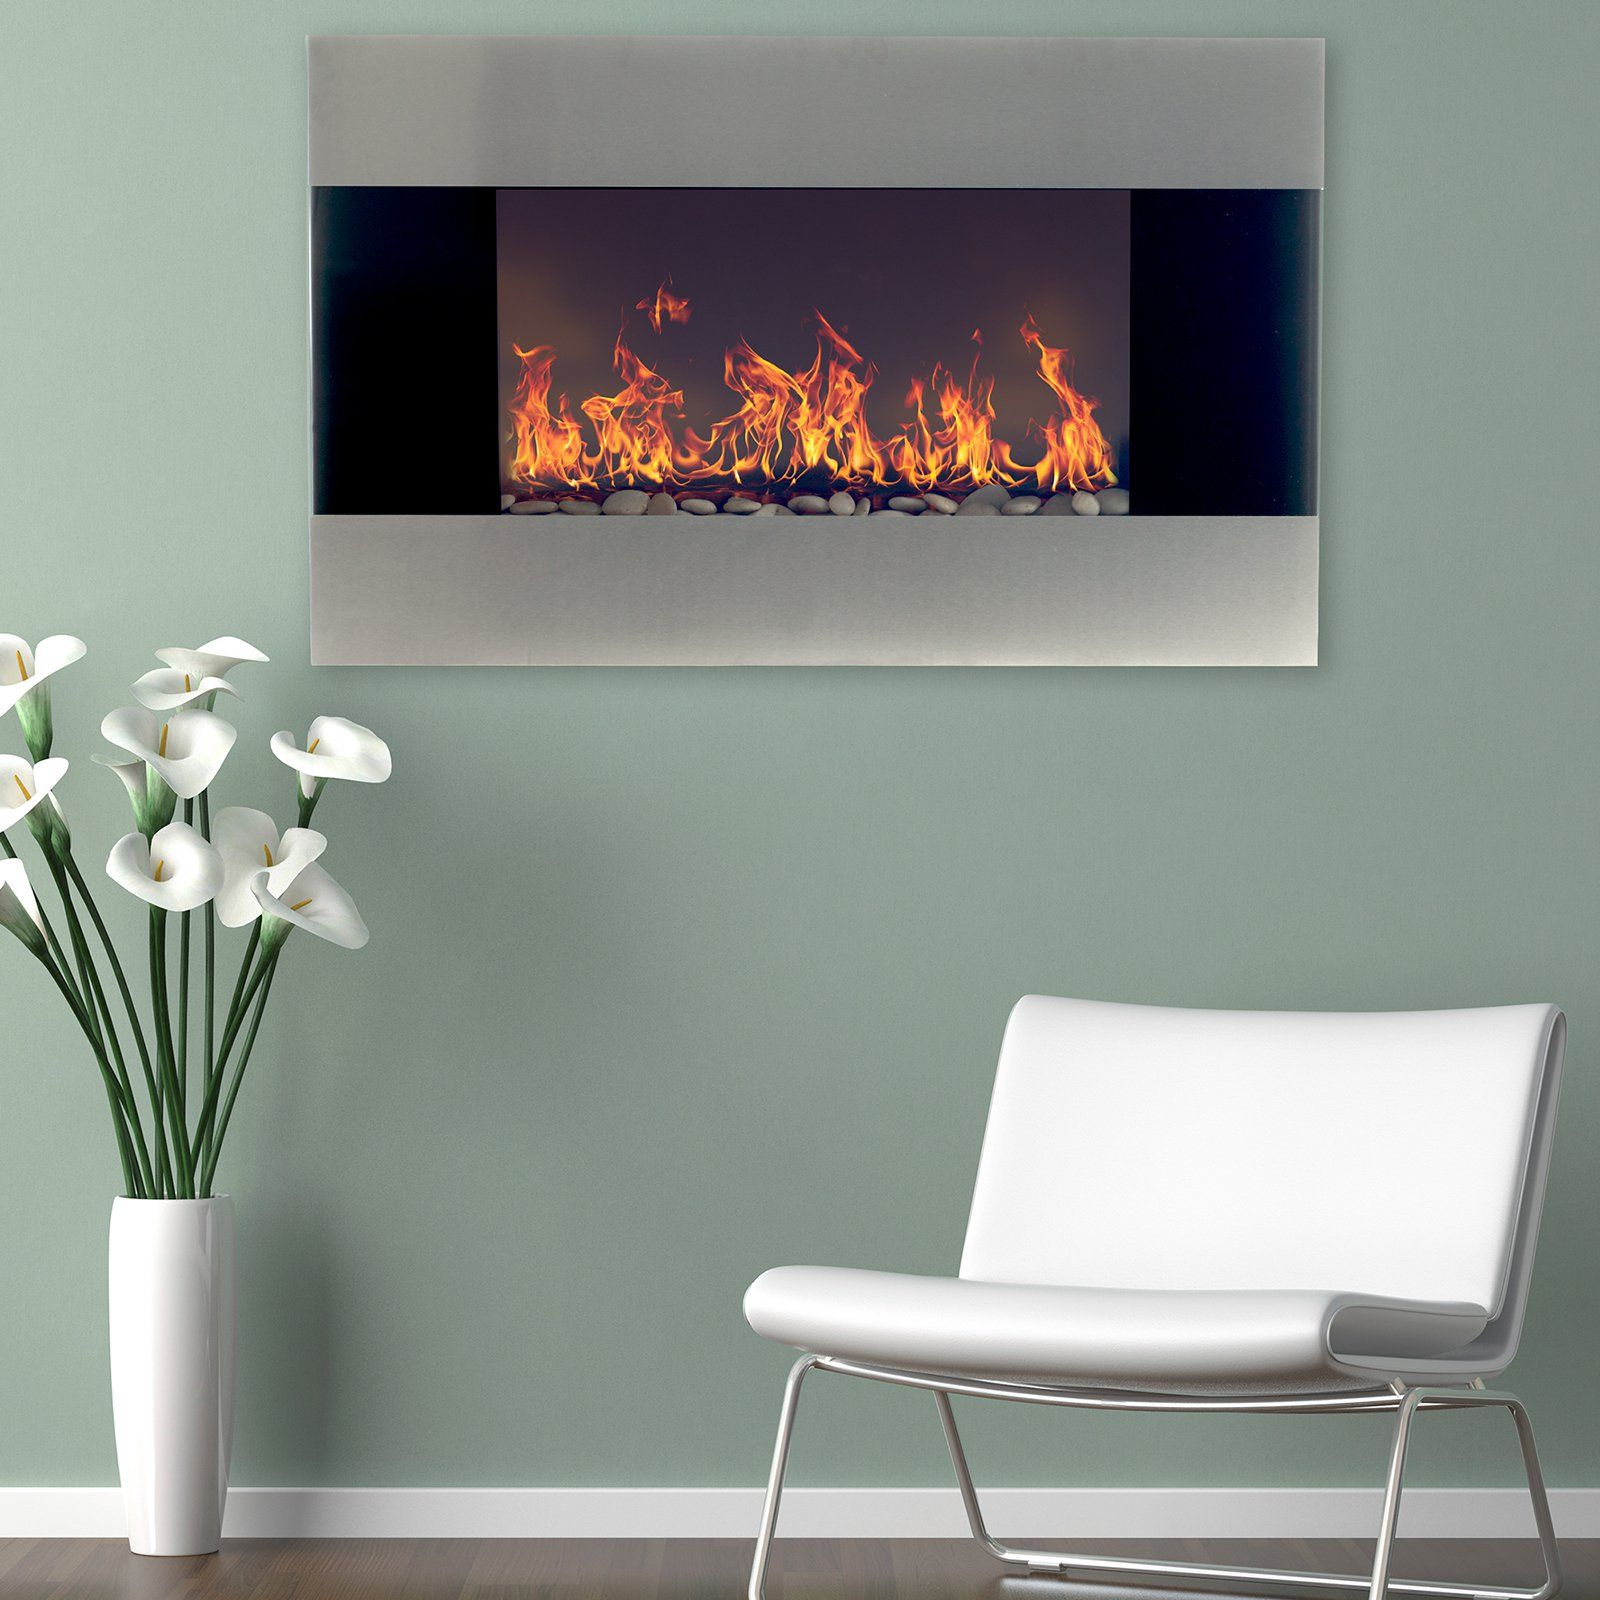 Northwest Stainless Steel Electric Fireplace Wall Mount From Hayneedle Com With Images Frames On Wall Black Framed Wall Art Mattress Furniture